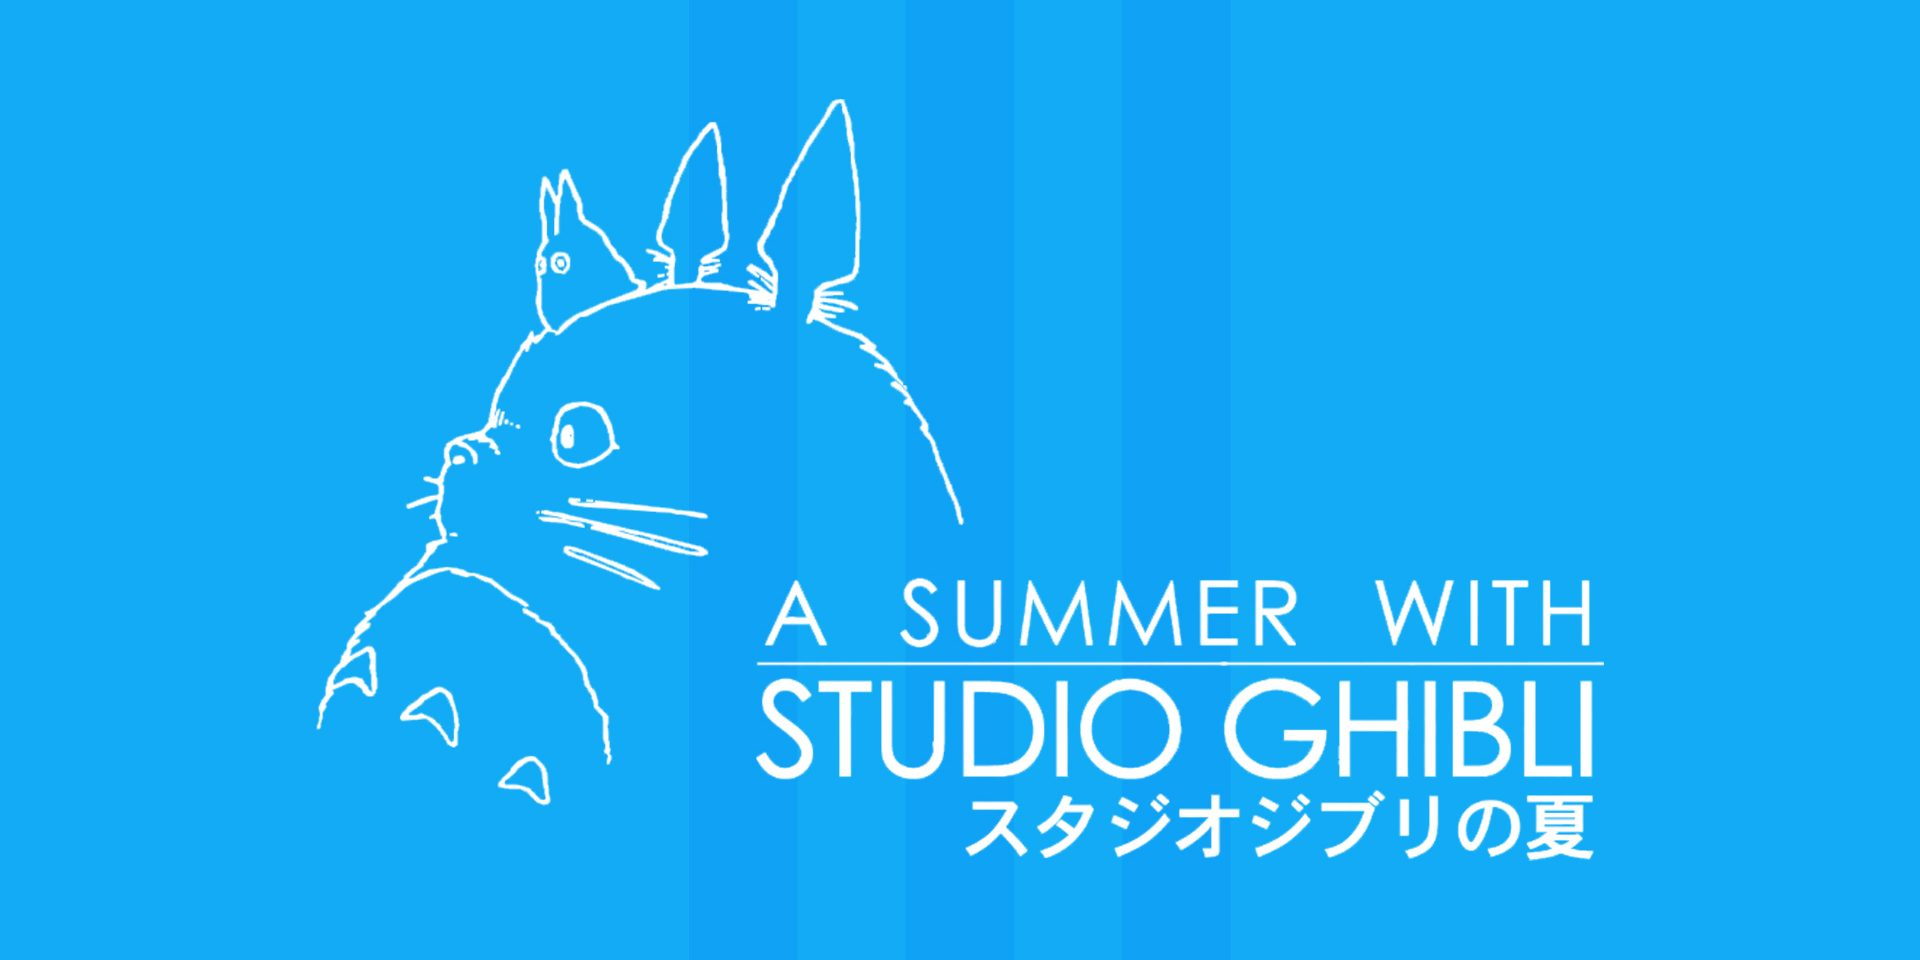 A Summer With Studio Ghibli